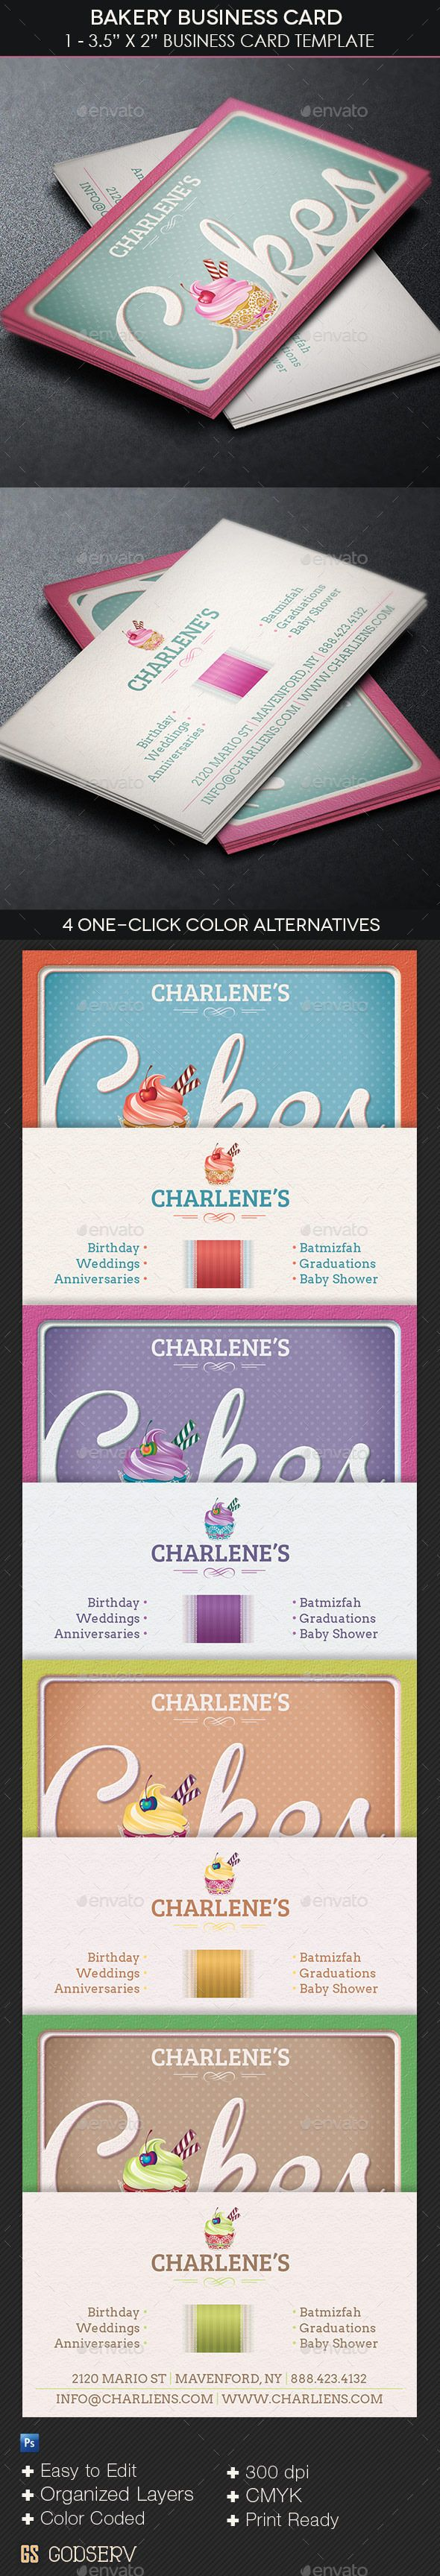 Sassy Customizable Cupcake Business Card Template This modern and